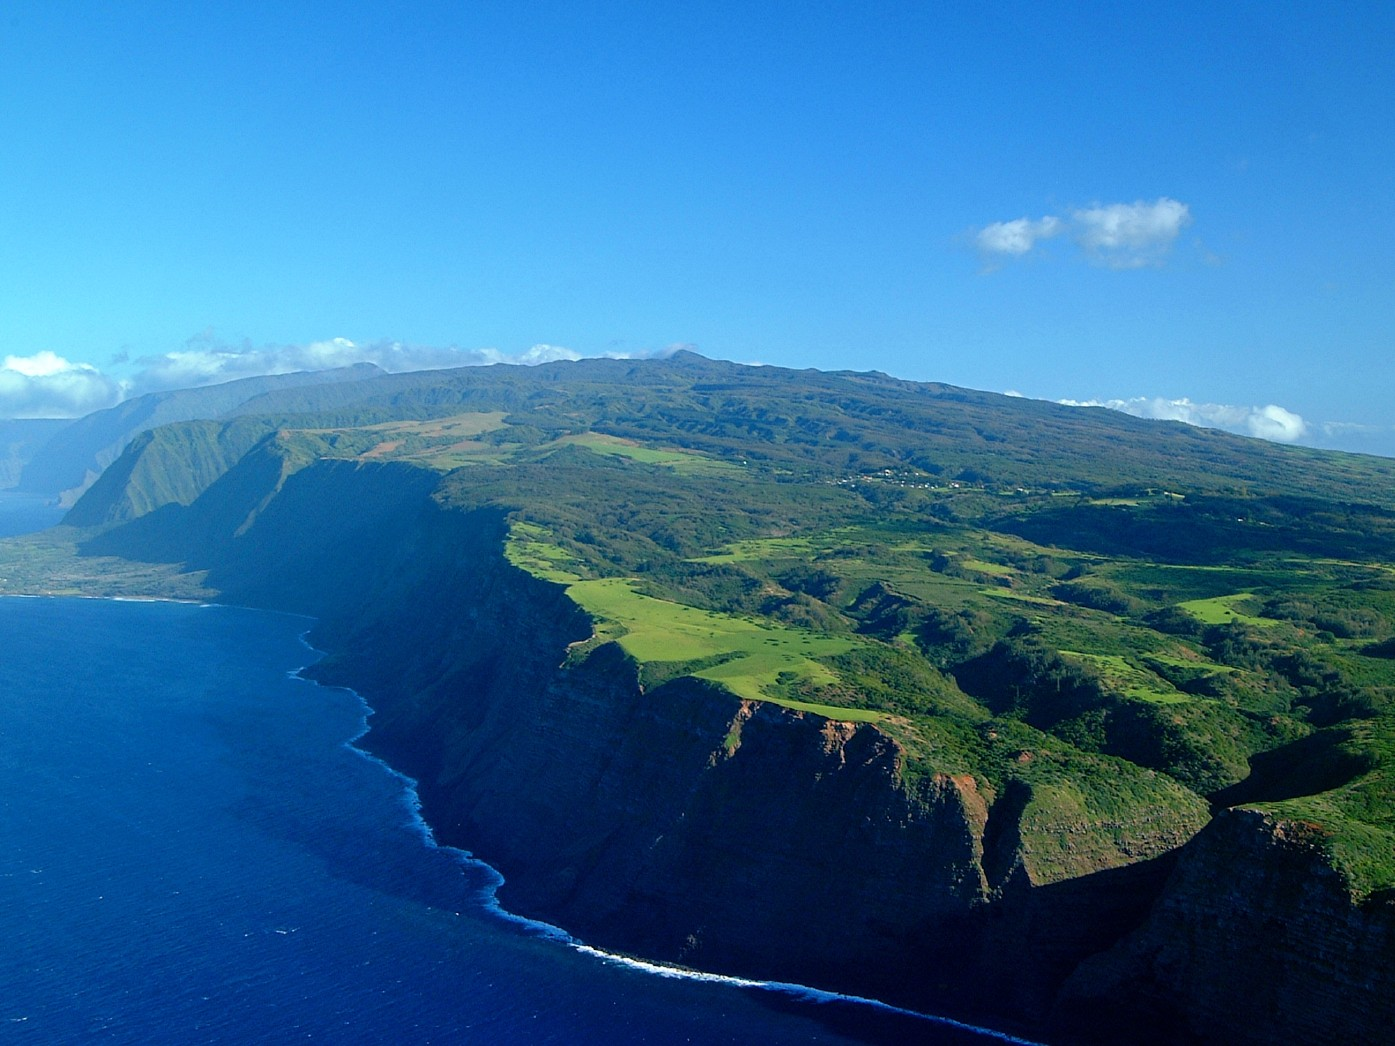 ESCAPE TO PARADISE: Top Five Hawaiian Islands